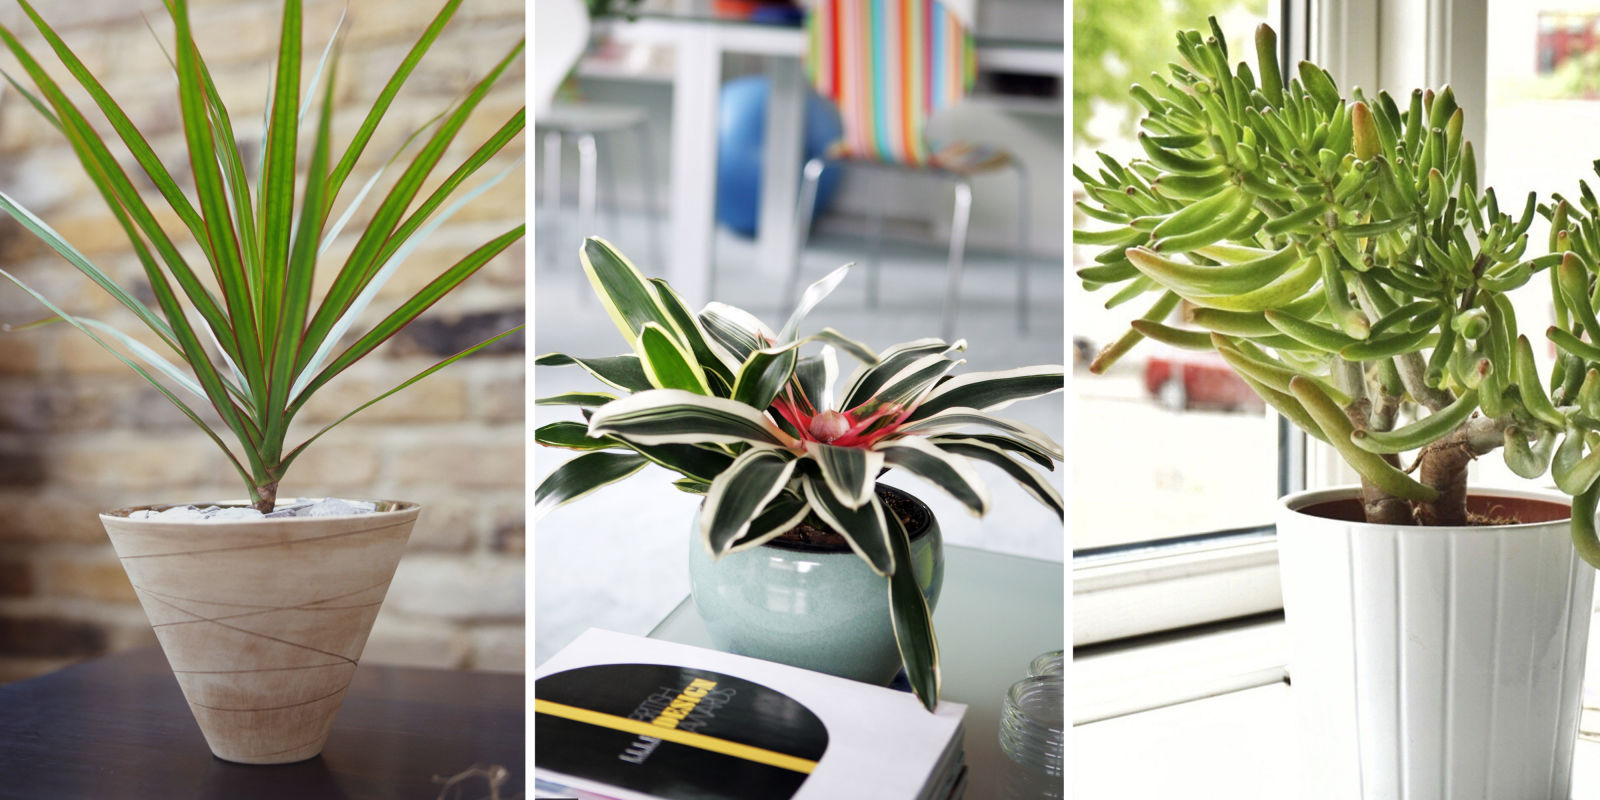 5 plants that can help improve air quality in your home plants that remove vocs - Plants can improve ambience home ...